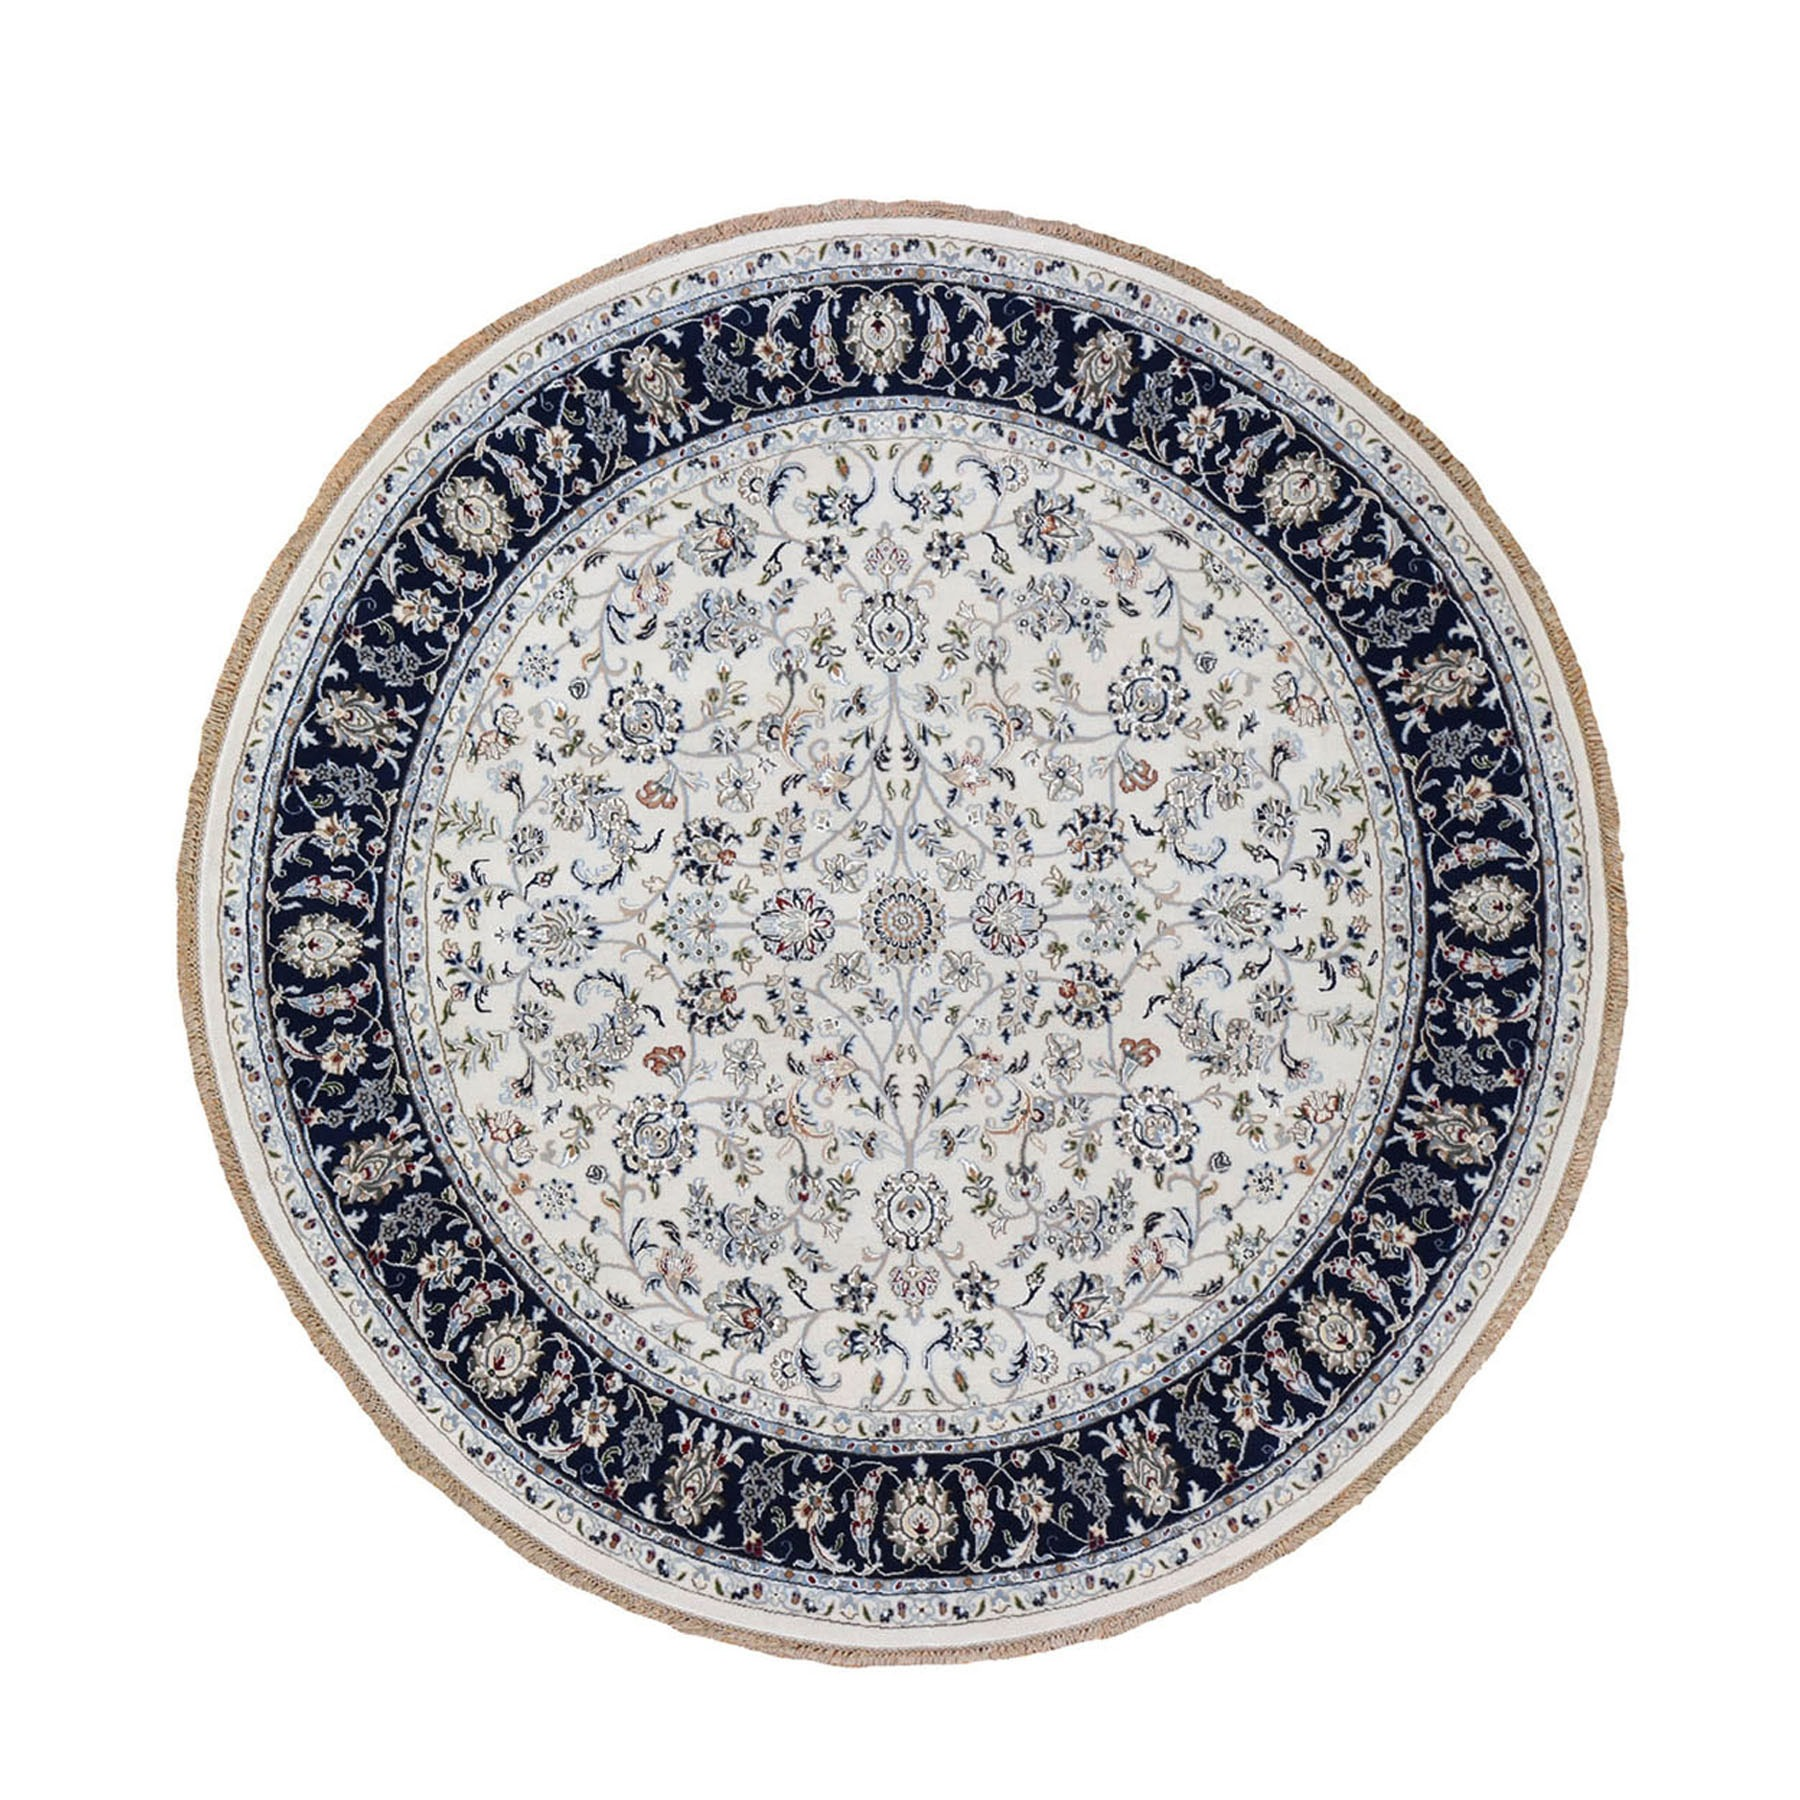 "8'1""x8'1"" Ivory Nain Wool And Silk 250 KPSI All Over Design Hand Knotted Round Oriental Rug"